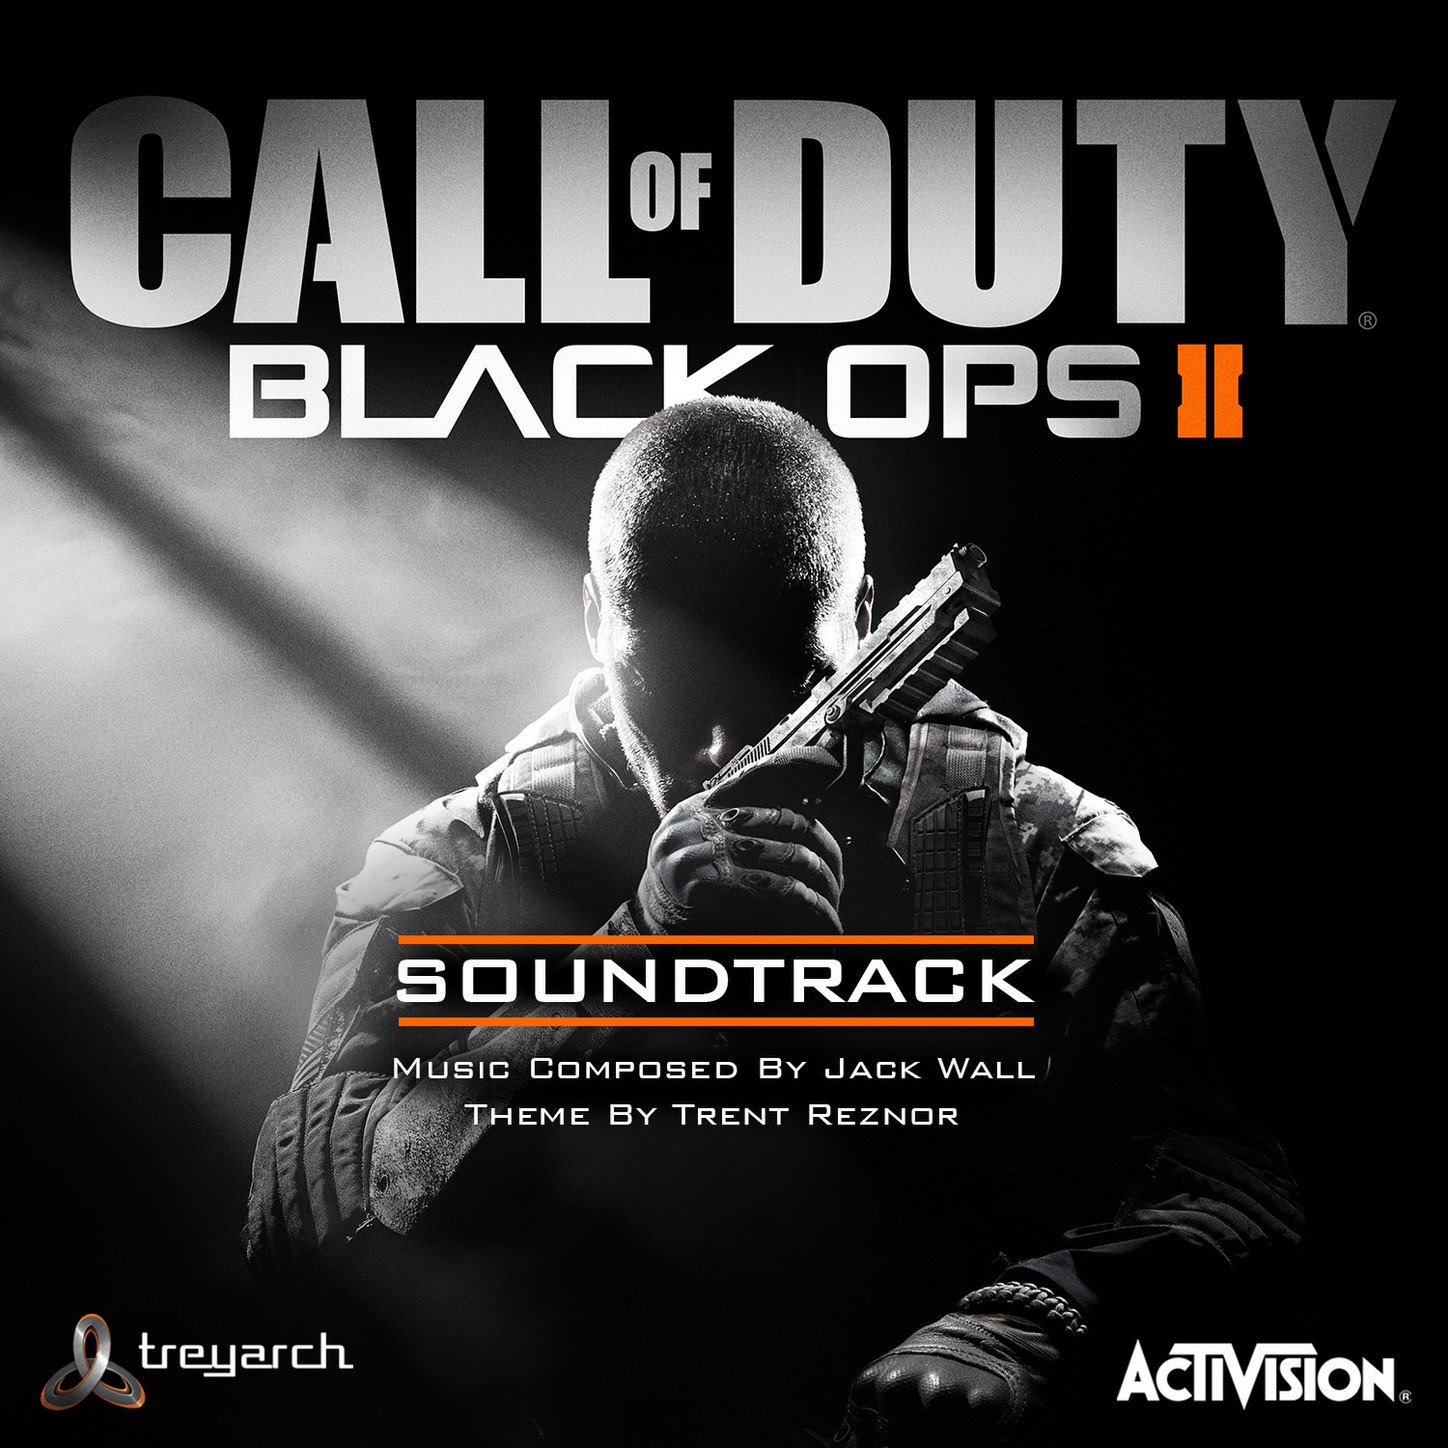 call of duty black ops ii official soundtrack   the call